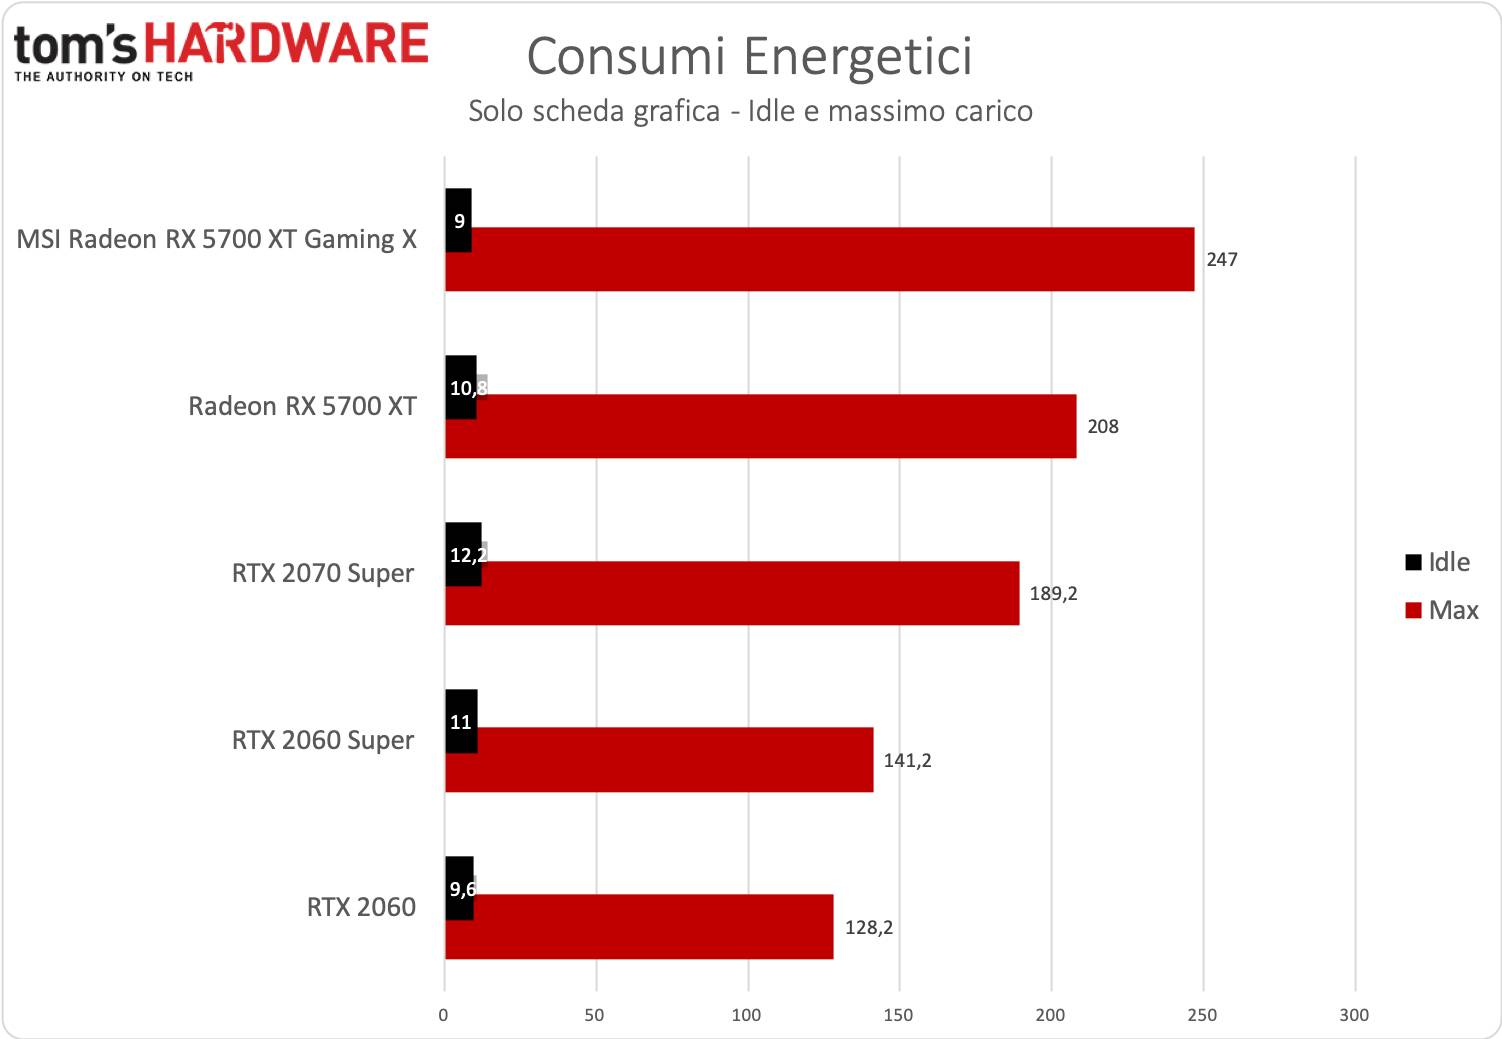 Test MSI RX 5700 XT Gaming X consumi